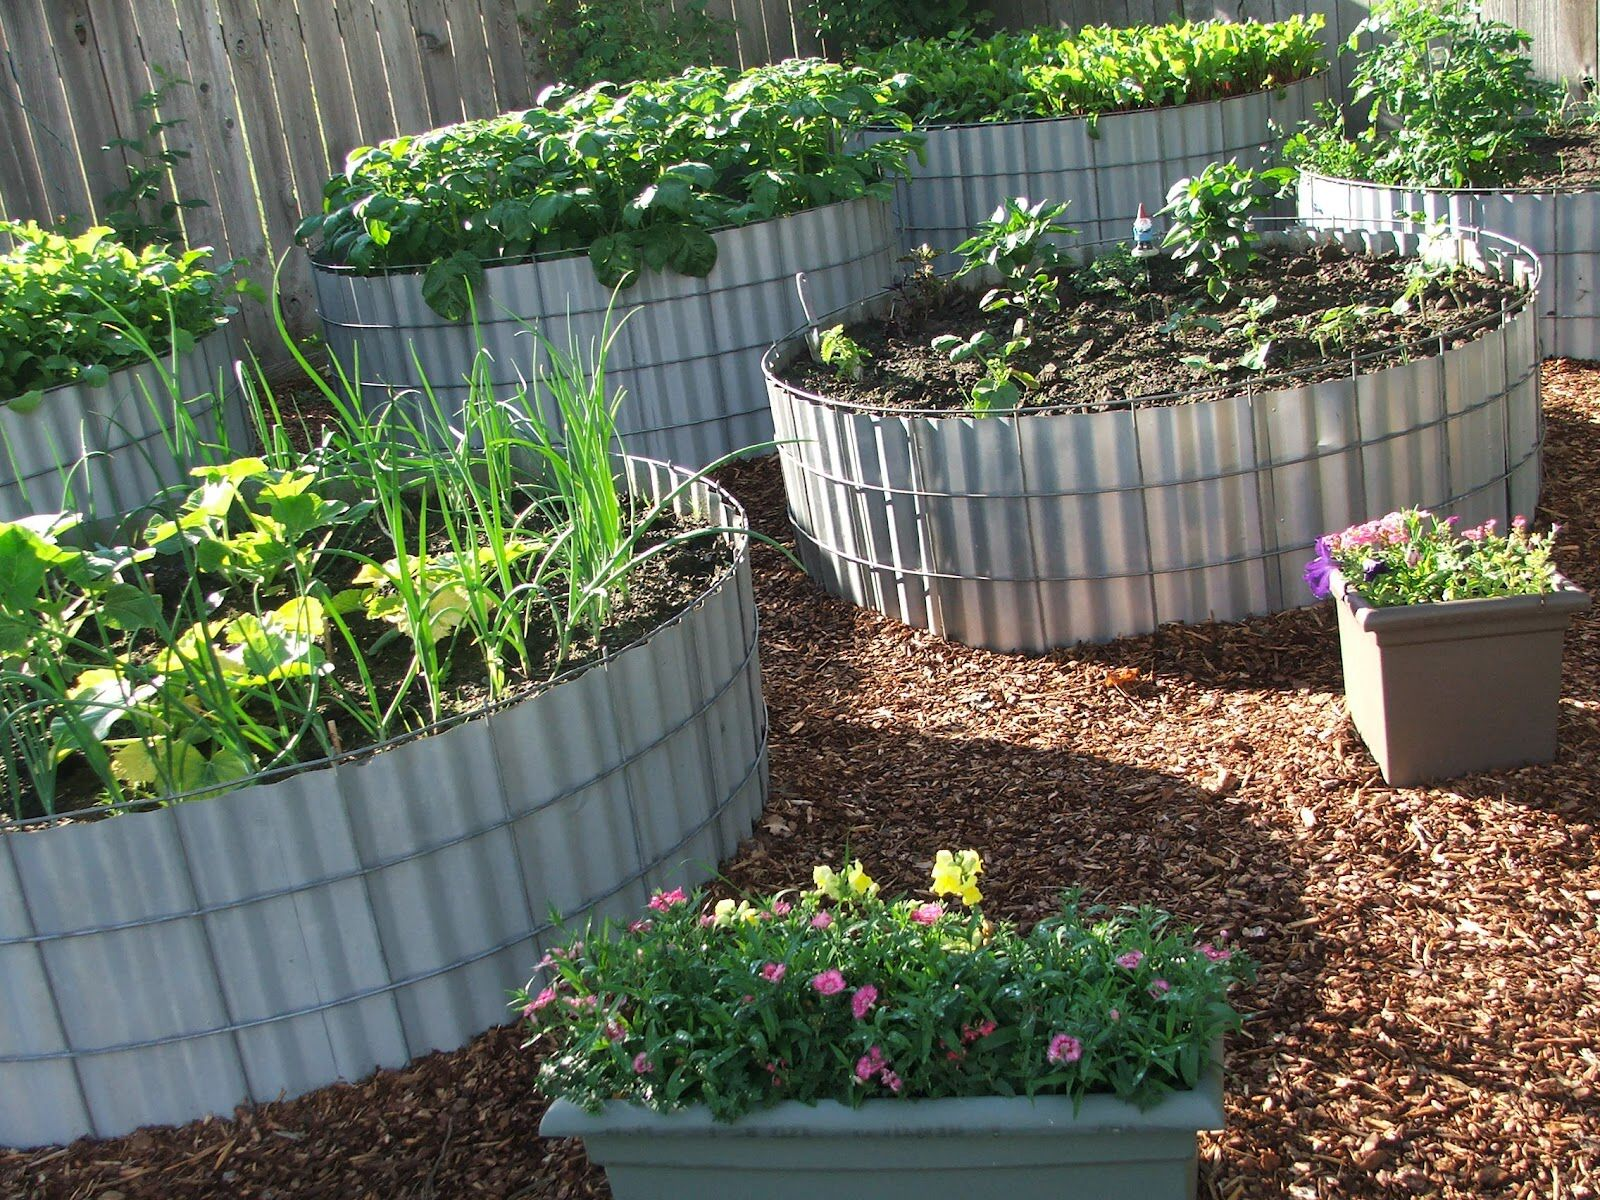 Planting Beds Design Ideas basic design principles and styles for garden beds Find This Pin And More On Garden Ideas On A Budget Raised Garden Bed Design